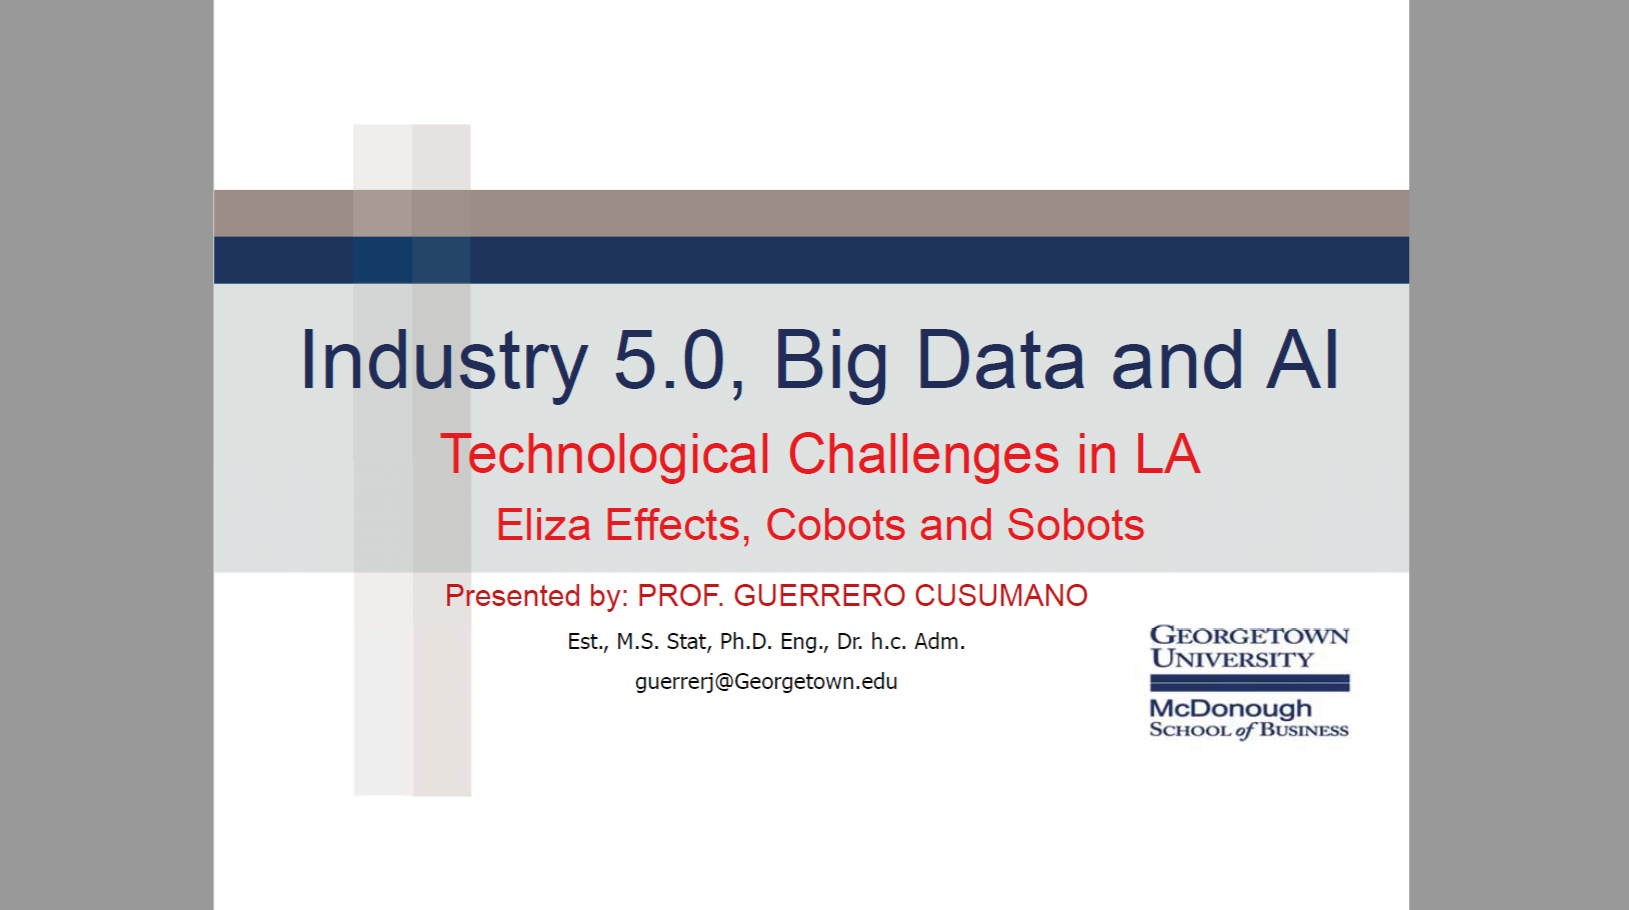 Industry 50 Big Data and AI